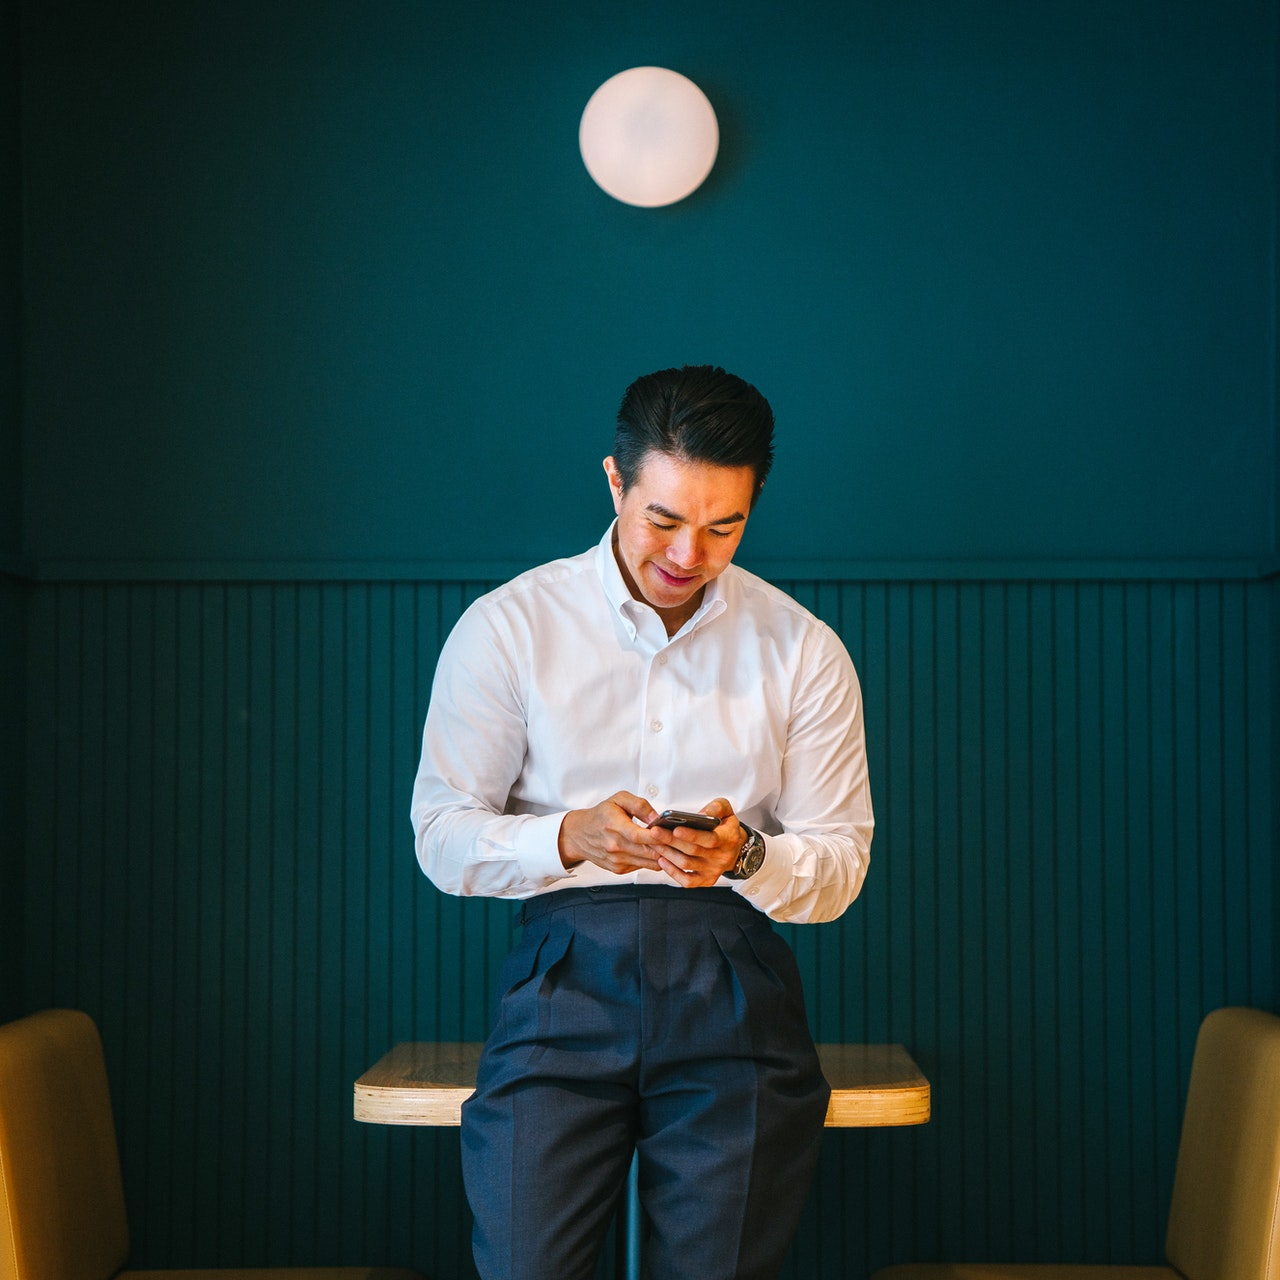 Capricorn Man Texting Style Signs He Likes You Through Text